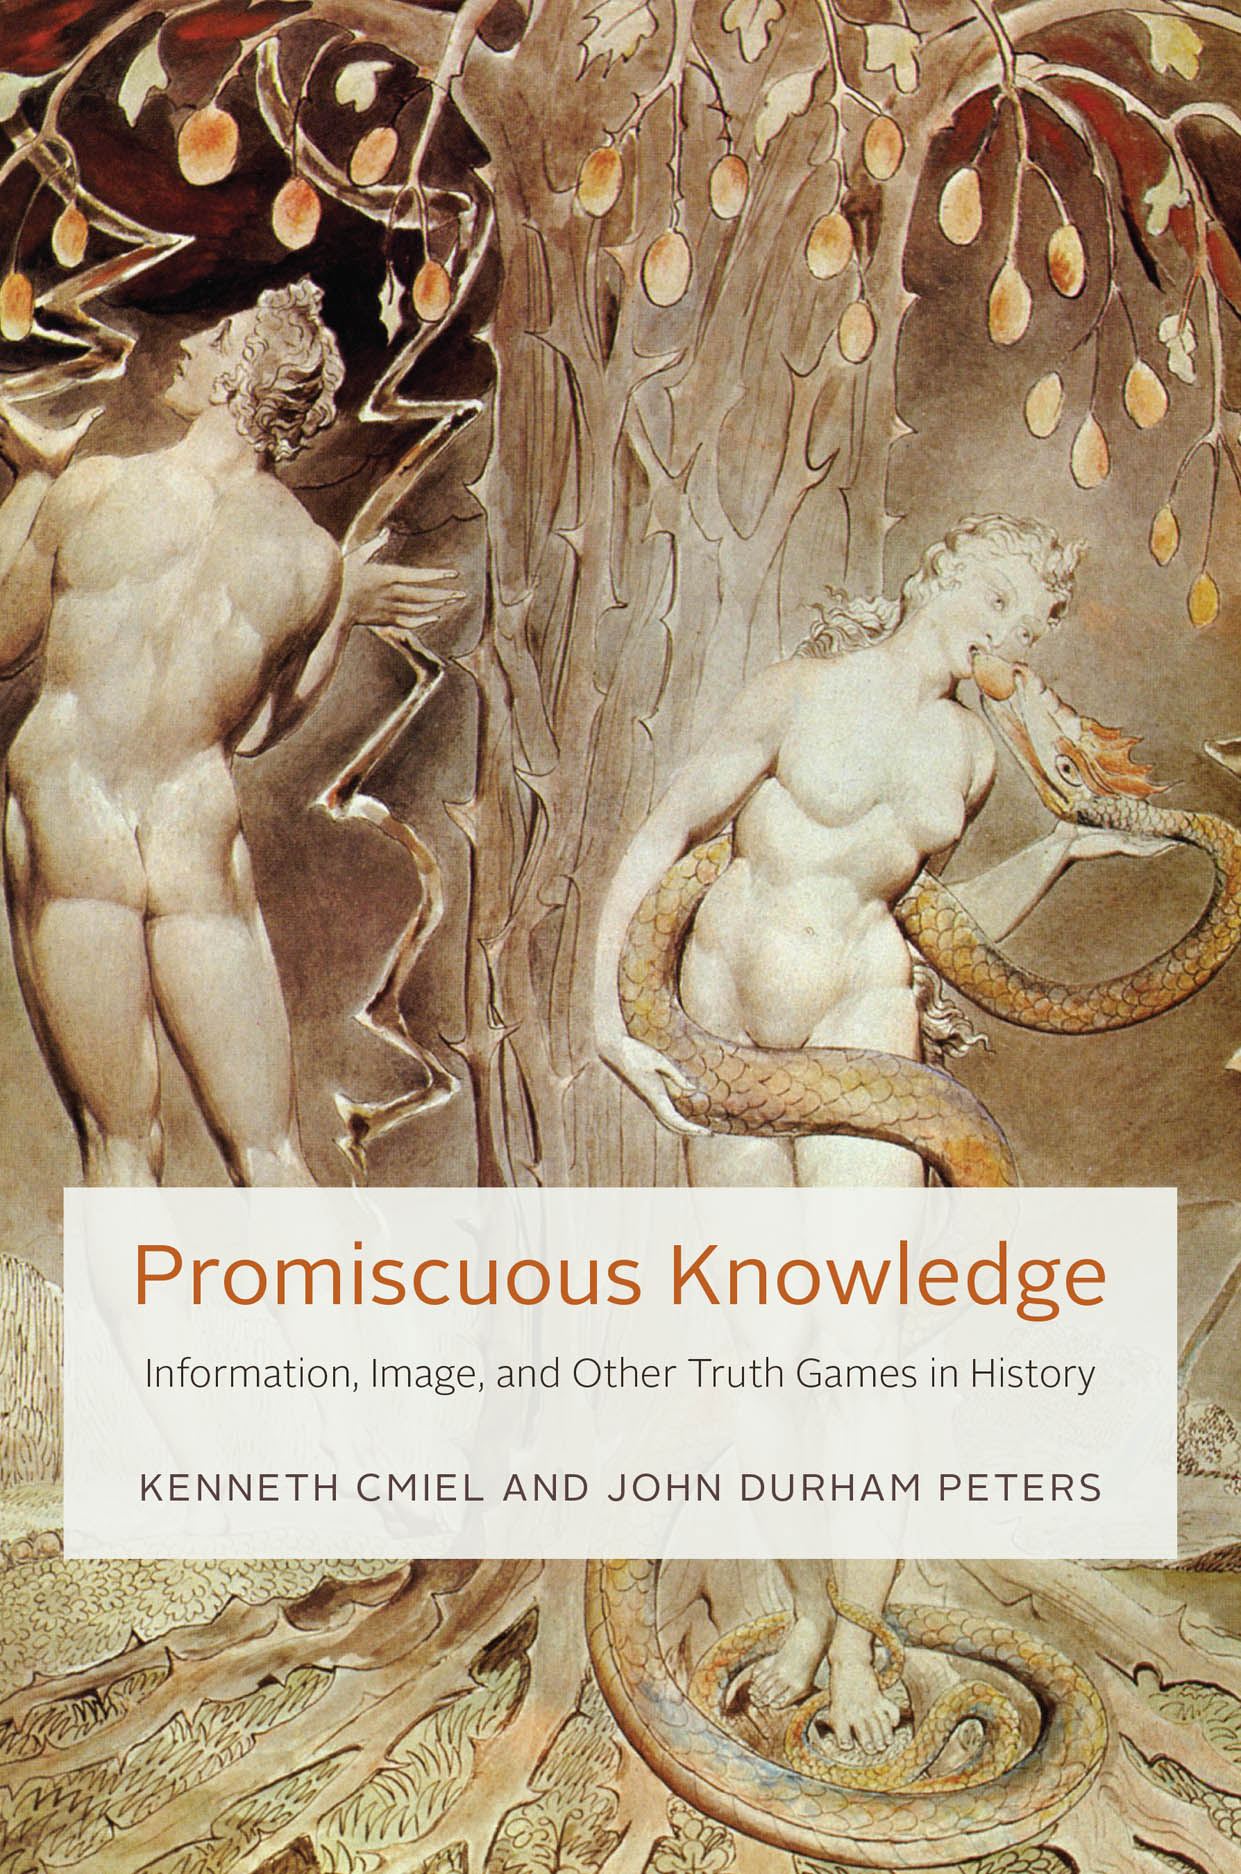 Promiscuous Knowledge: Information, Image, and Other Truth Games in History